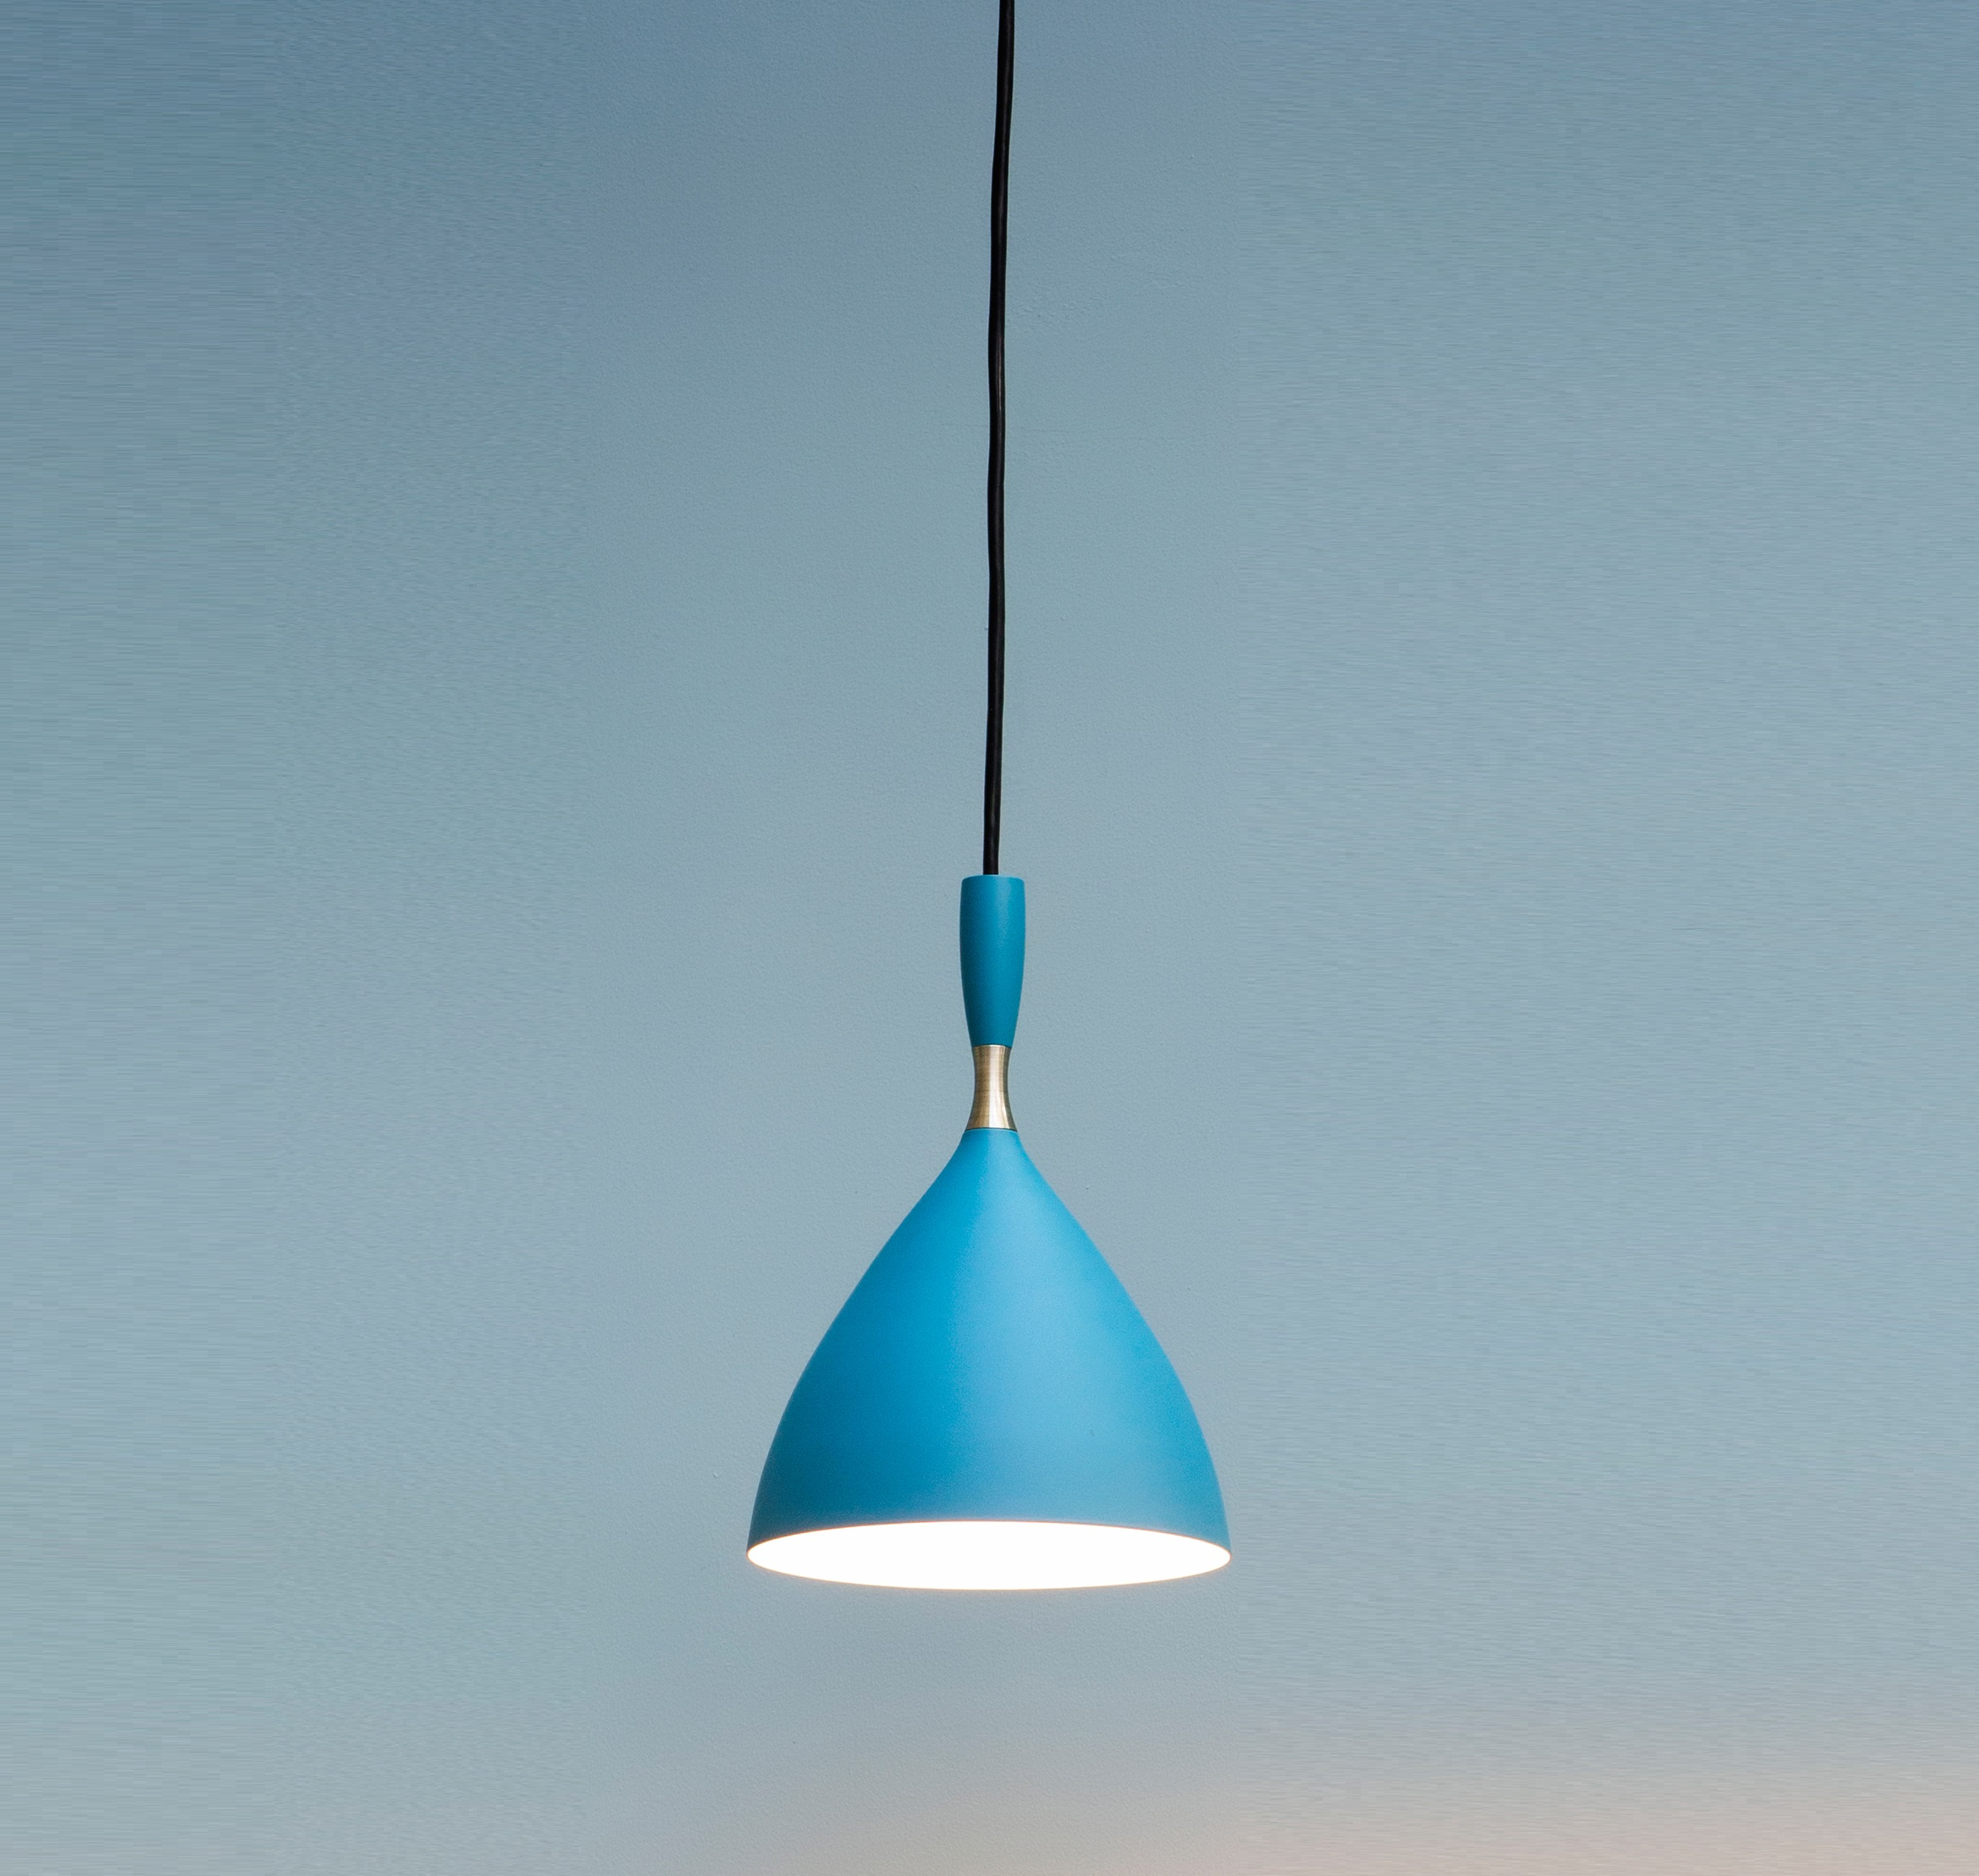 suspension luminaire bleu canard faire mieux pour votre. Black Bedroom Furniture Sets. Home Design Ideas